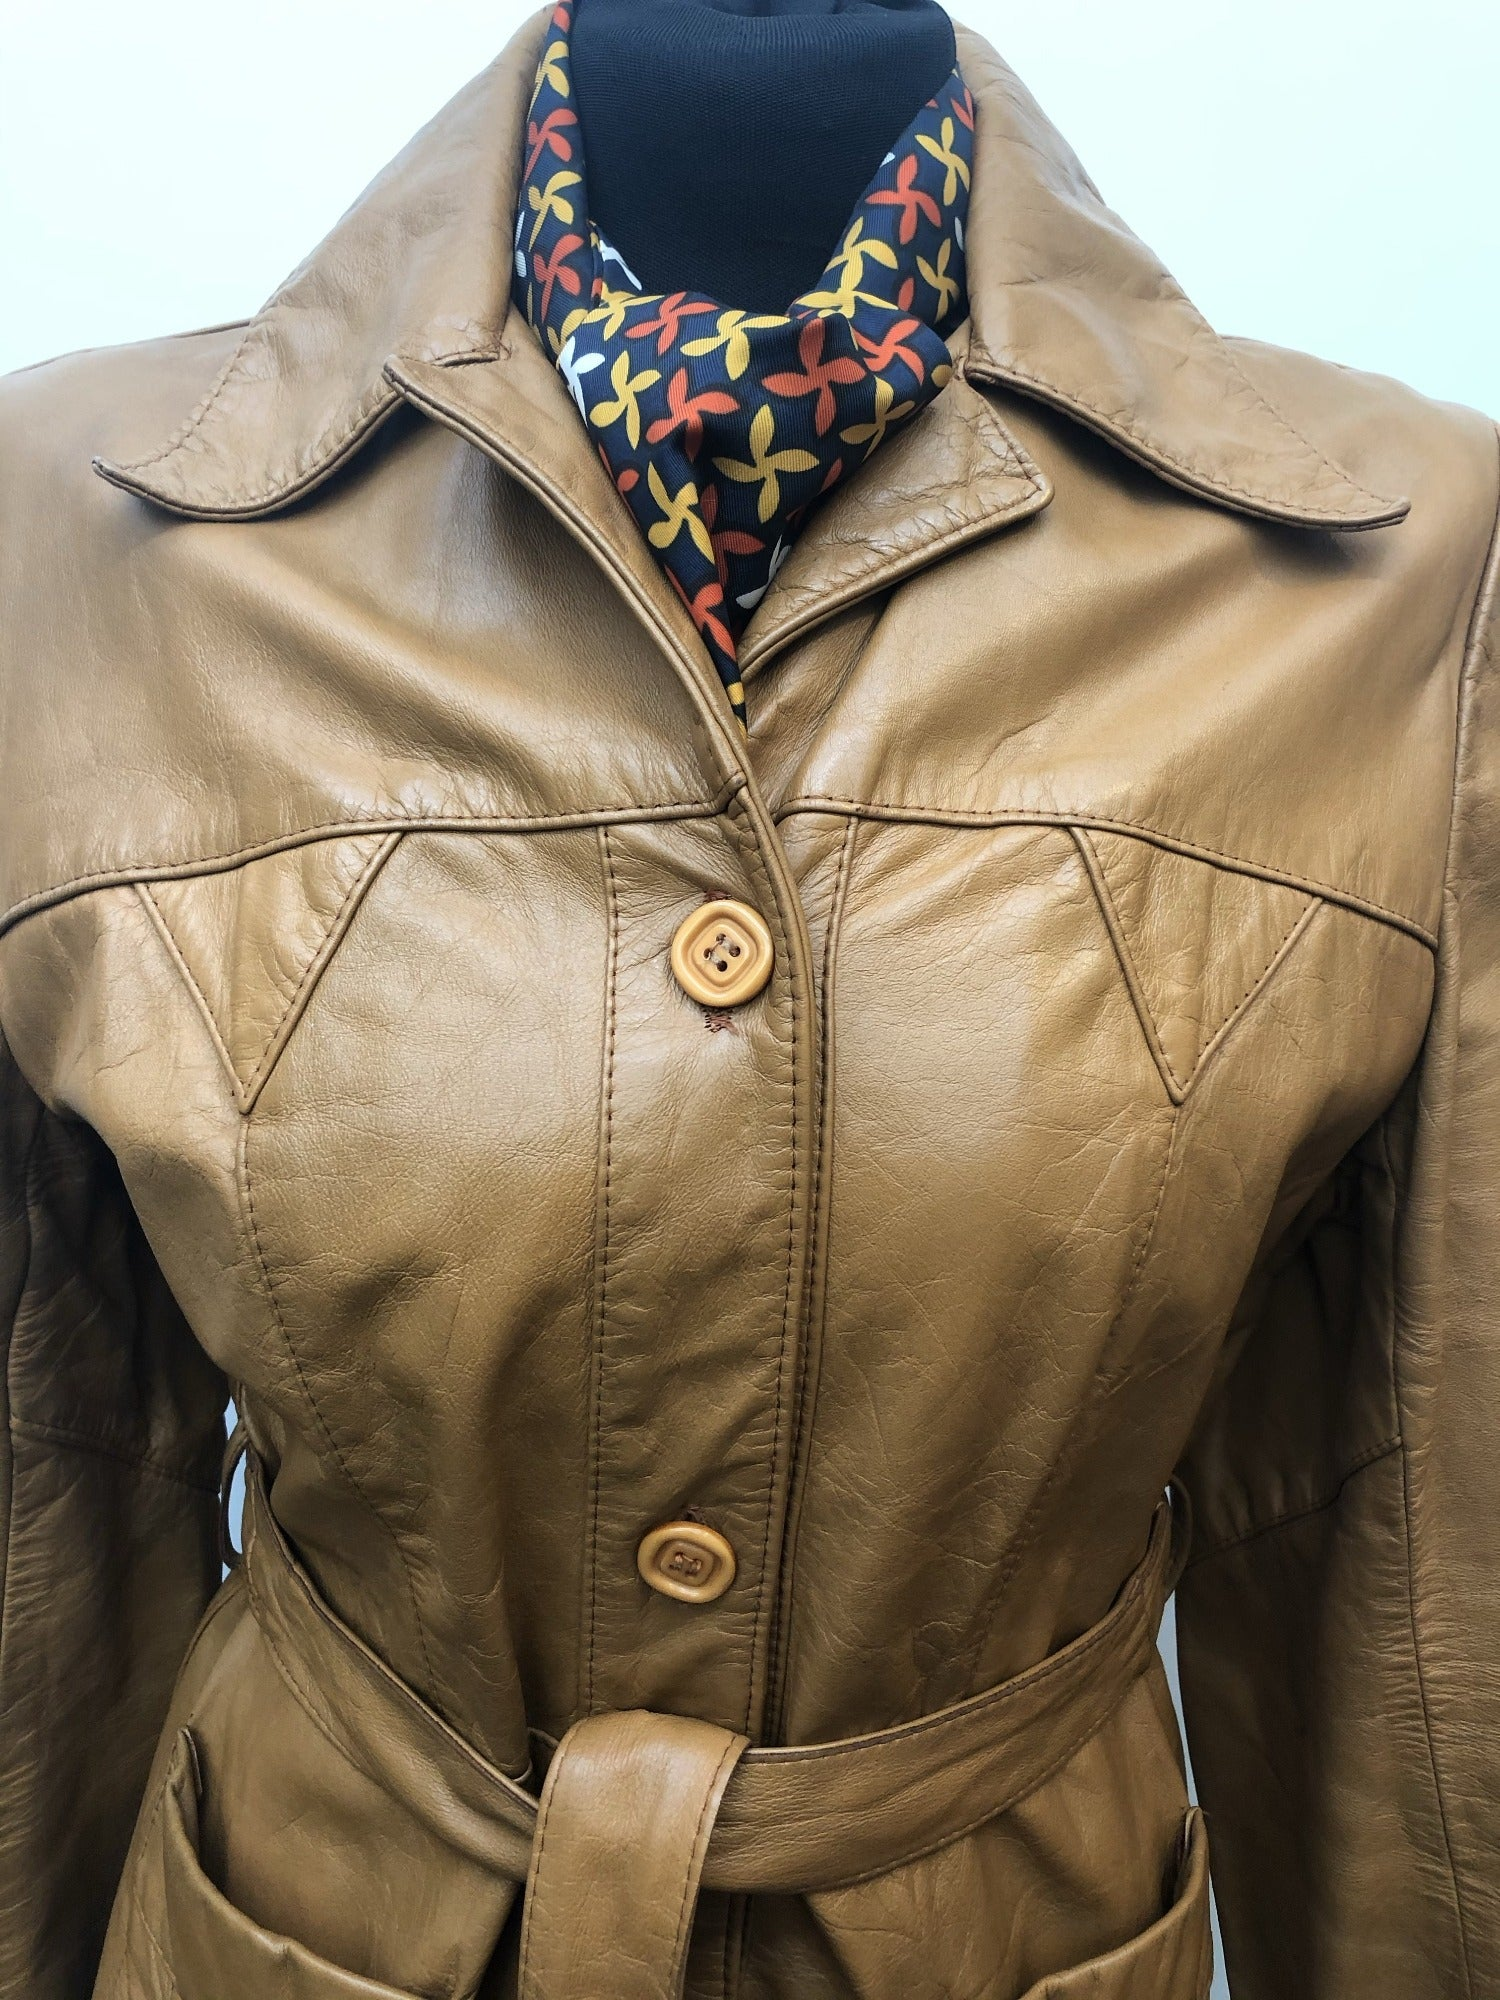 12  womens jacket  womens  vintage  Tan  light brown  Leather Jacket  Leather detailing  Leather  Jacket  brown leather  brown  70s  1970s urban village vintage